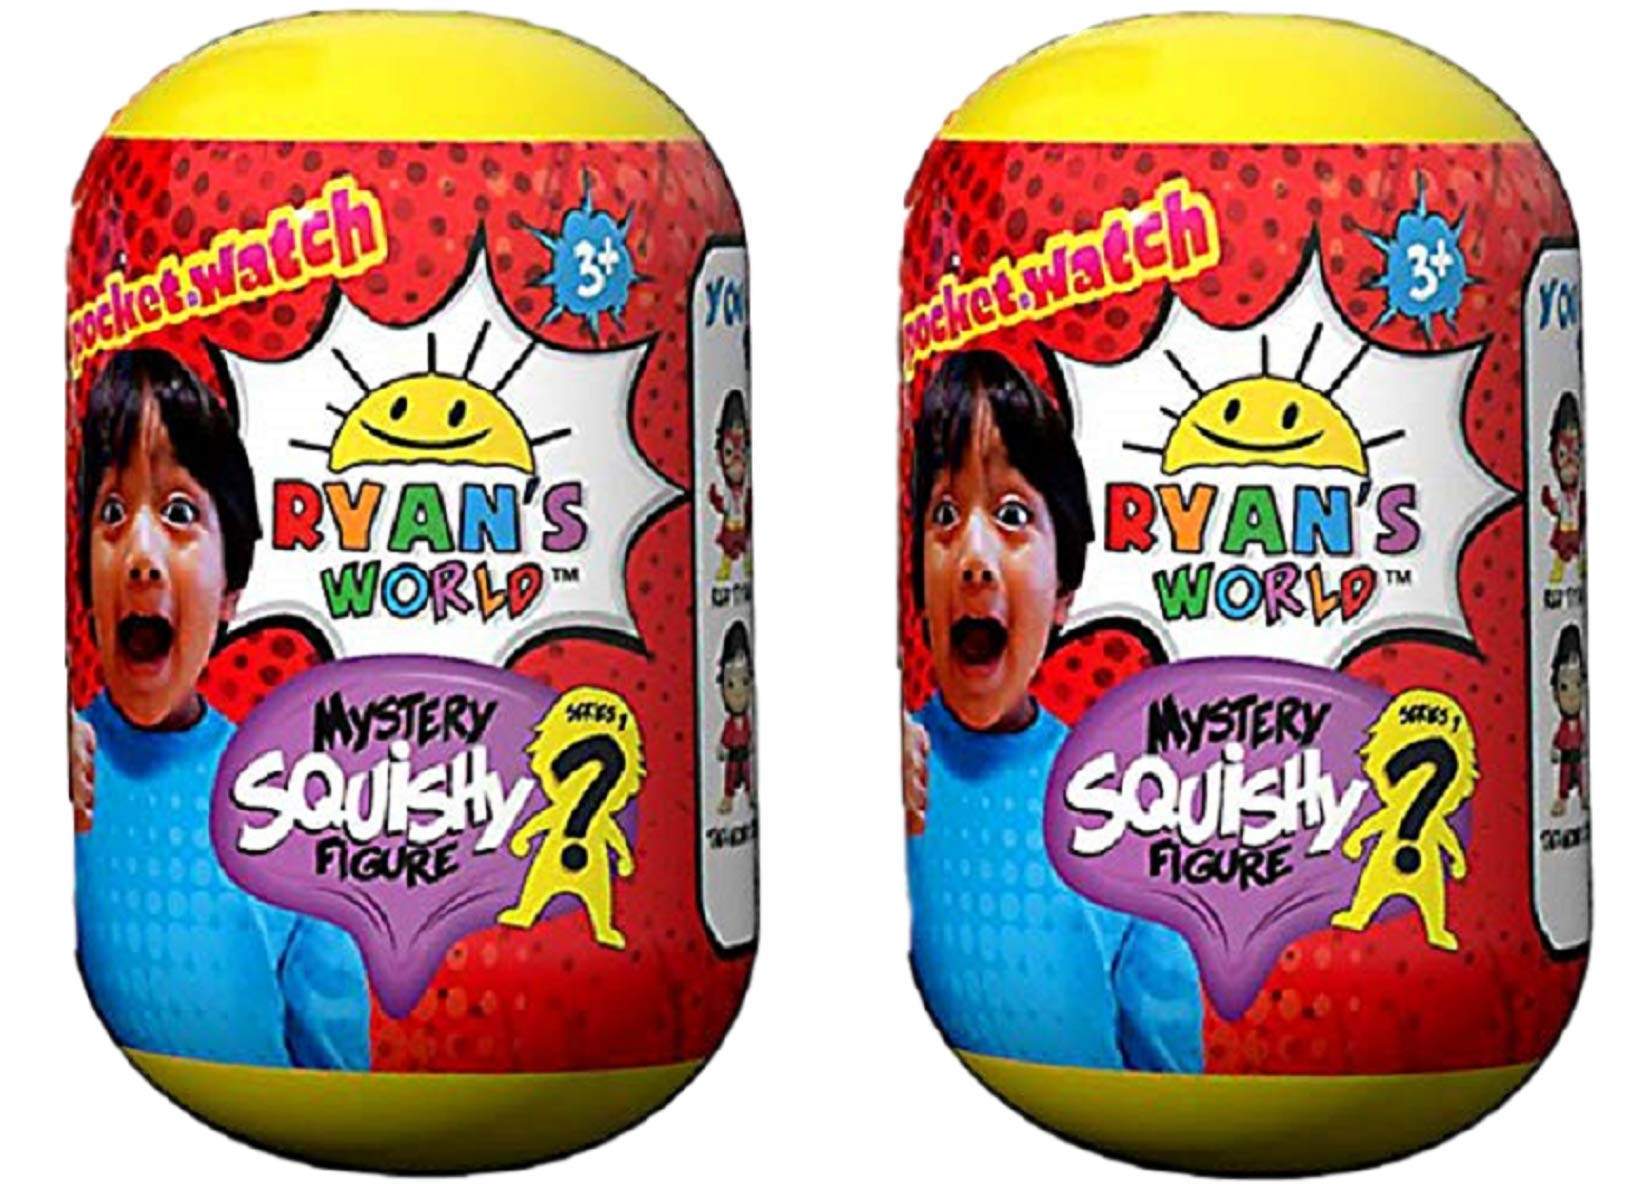 Ryan's World Pocket Watch Mystery Squishy Figure - Multipack of 2 by Ryan's World (Image #1)